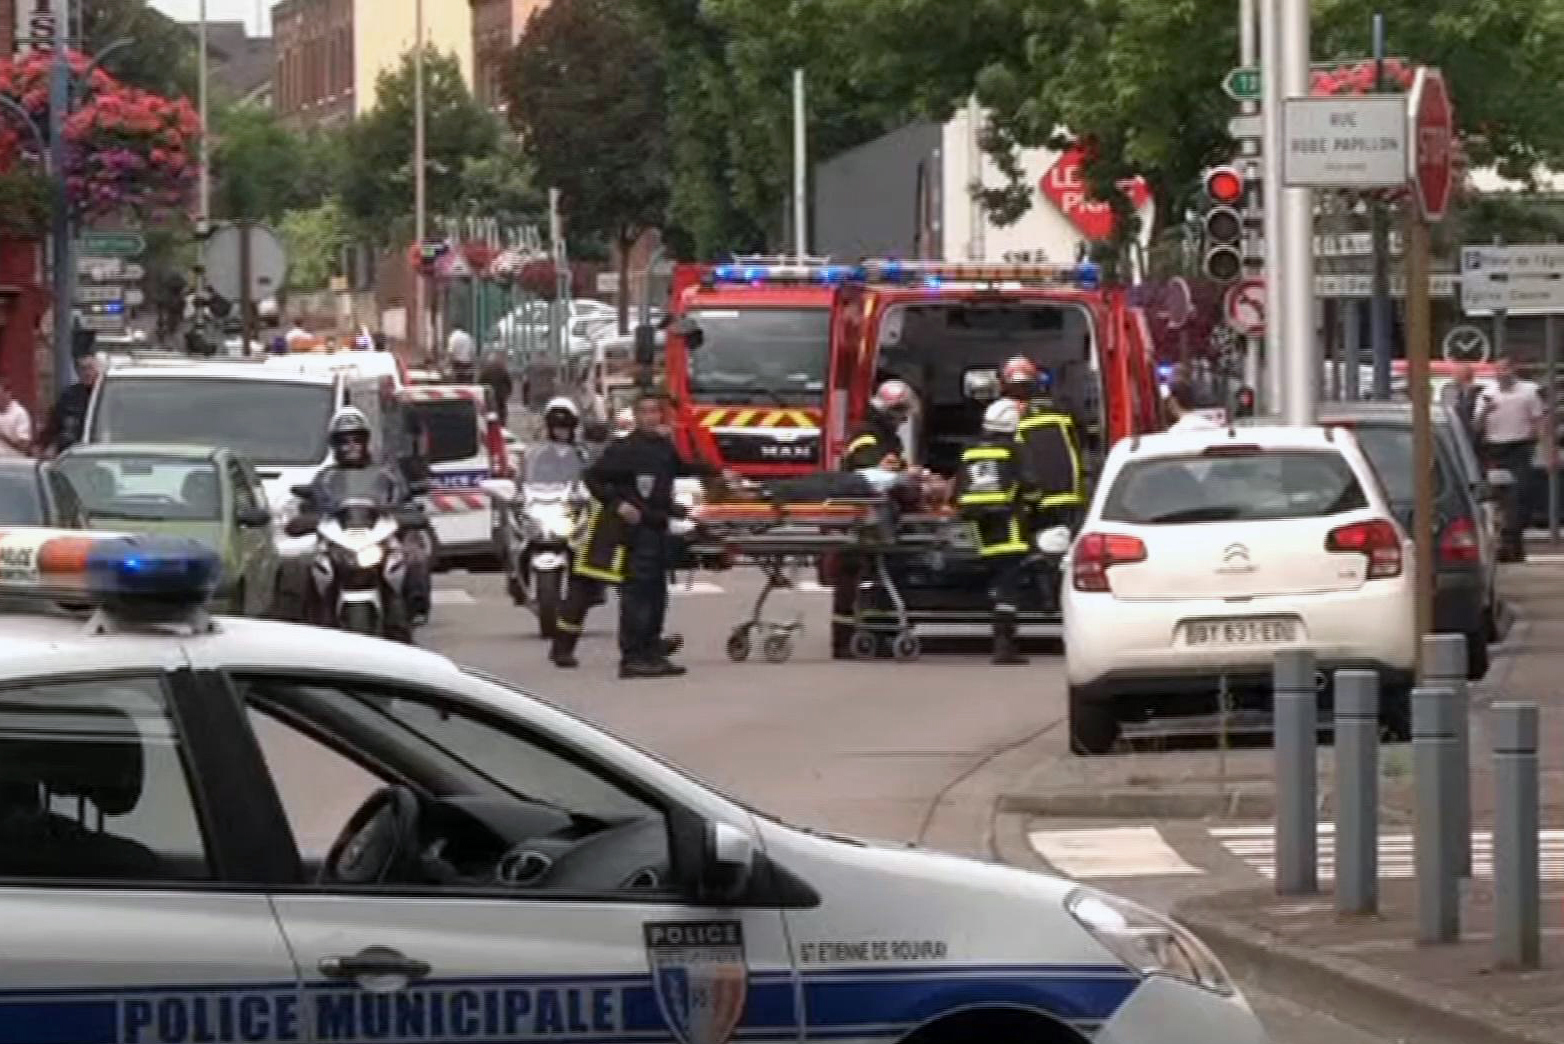 French hostage situation aftermath (BFM via AP)